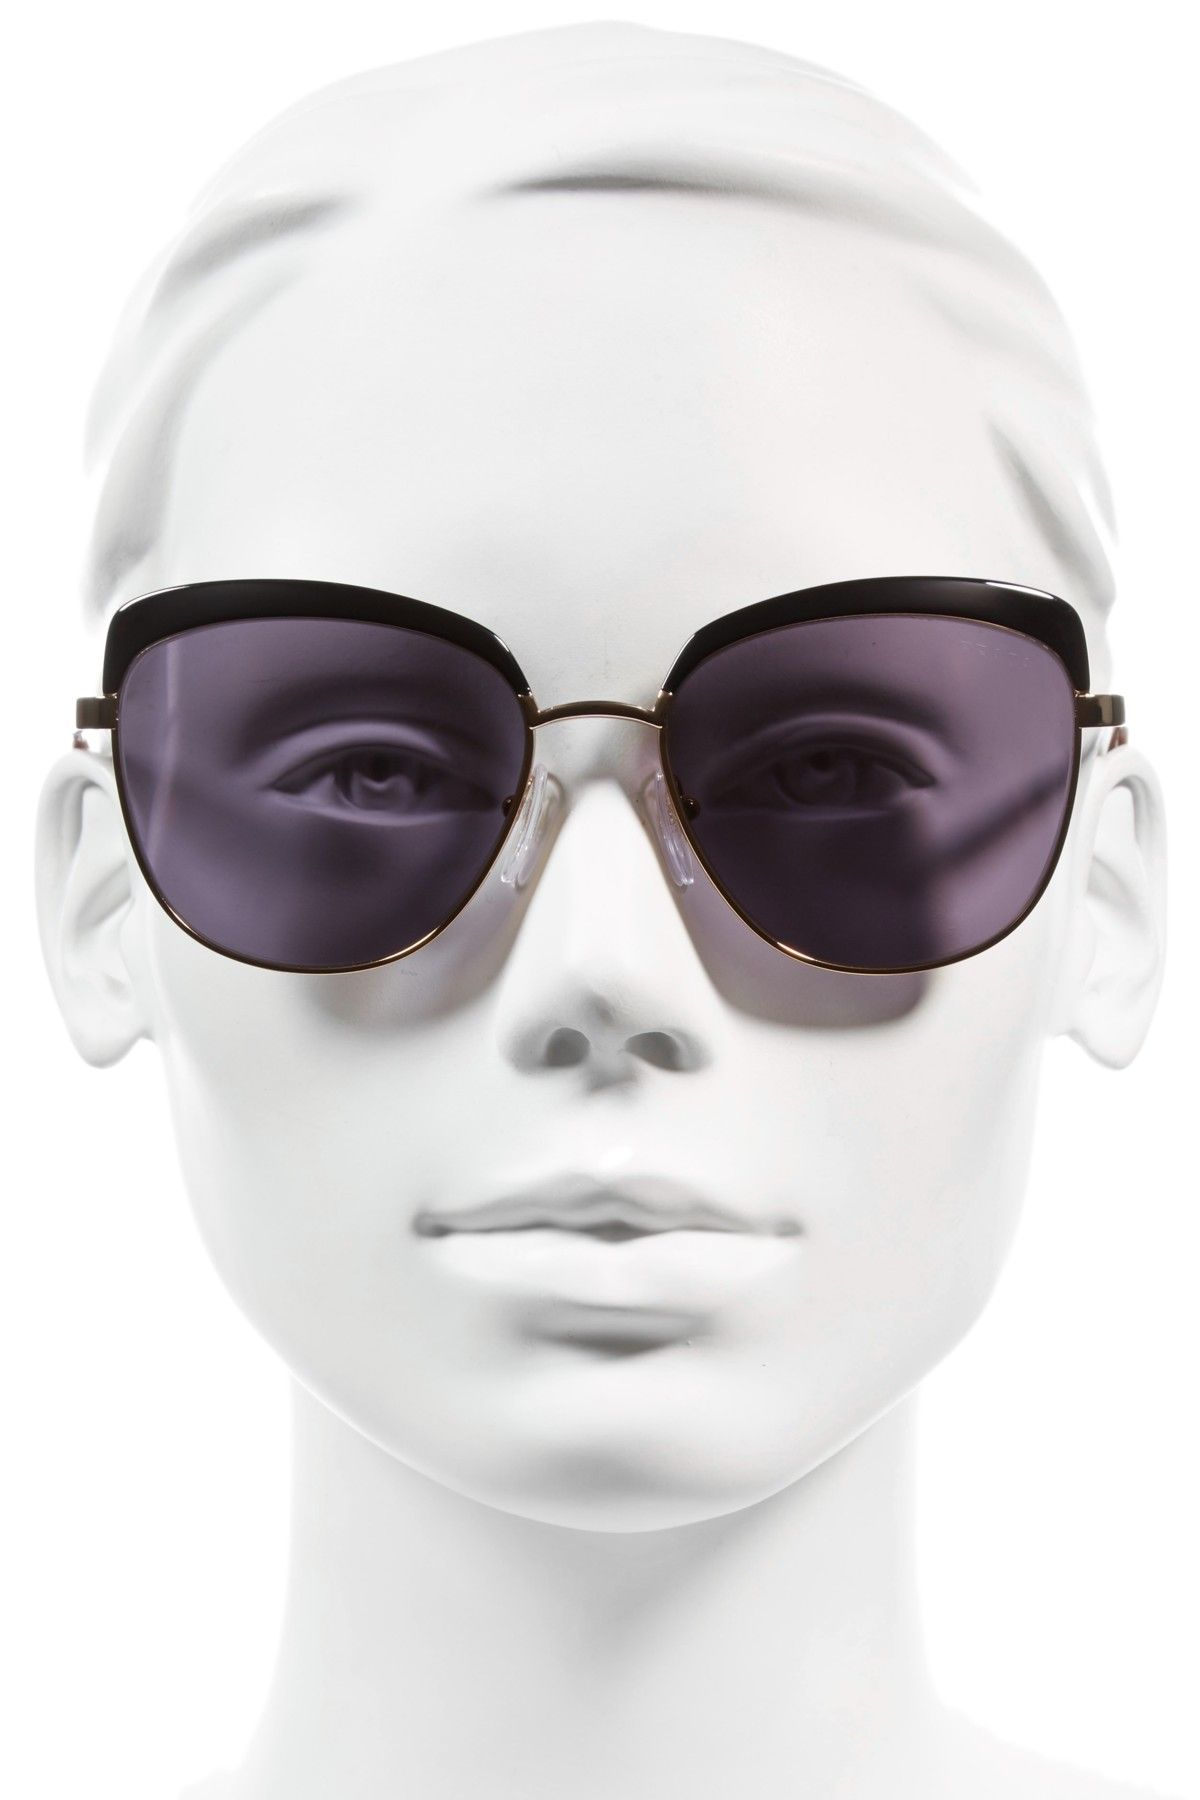 62329786b0 Women s Catwalk 56mm Sunglasses by Prada on  nordstrom rack